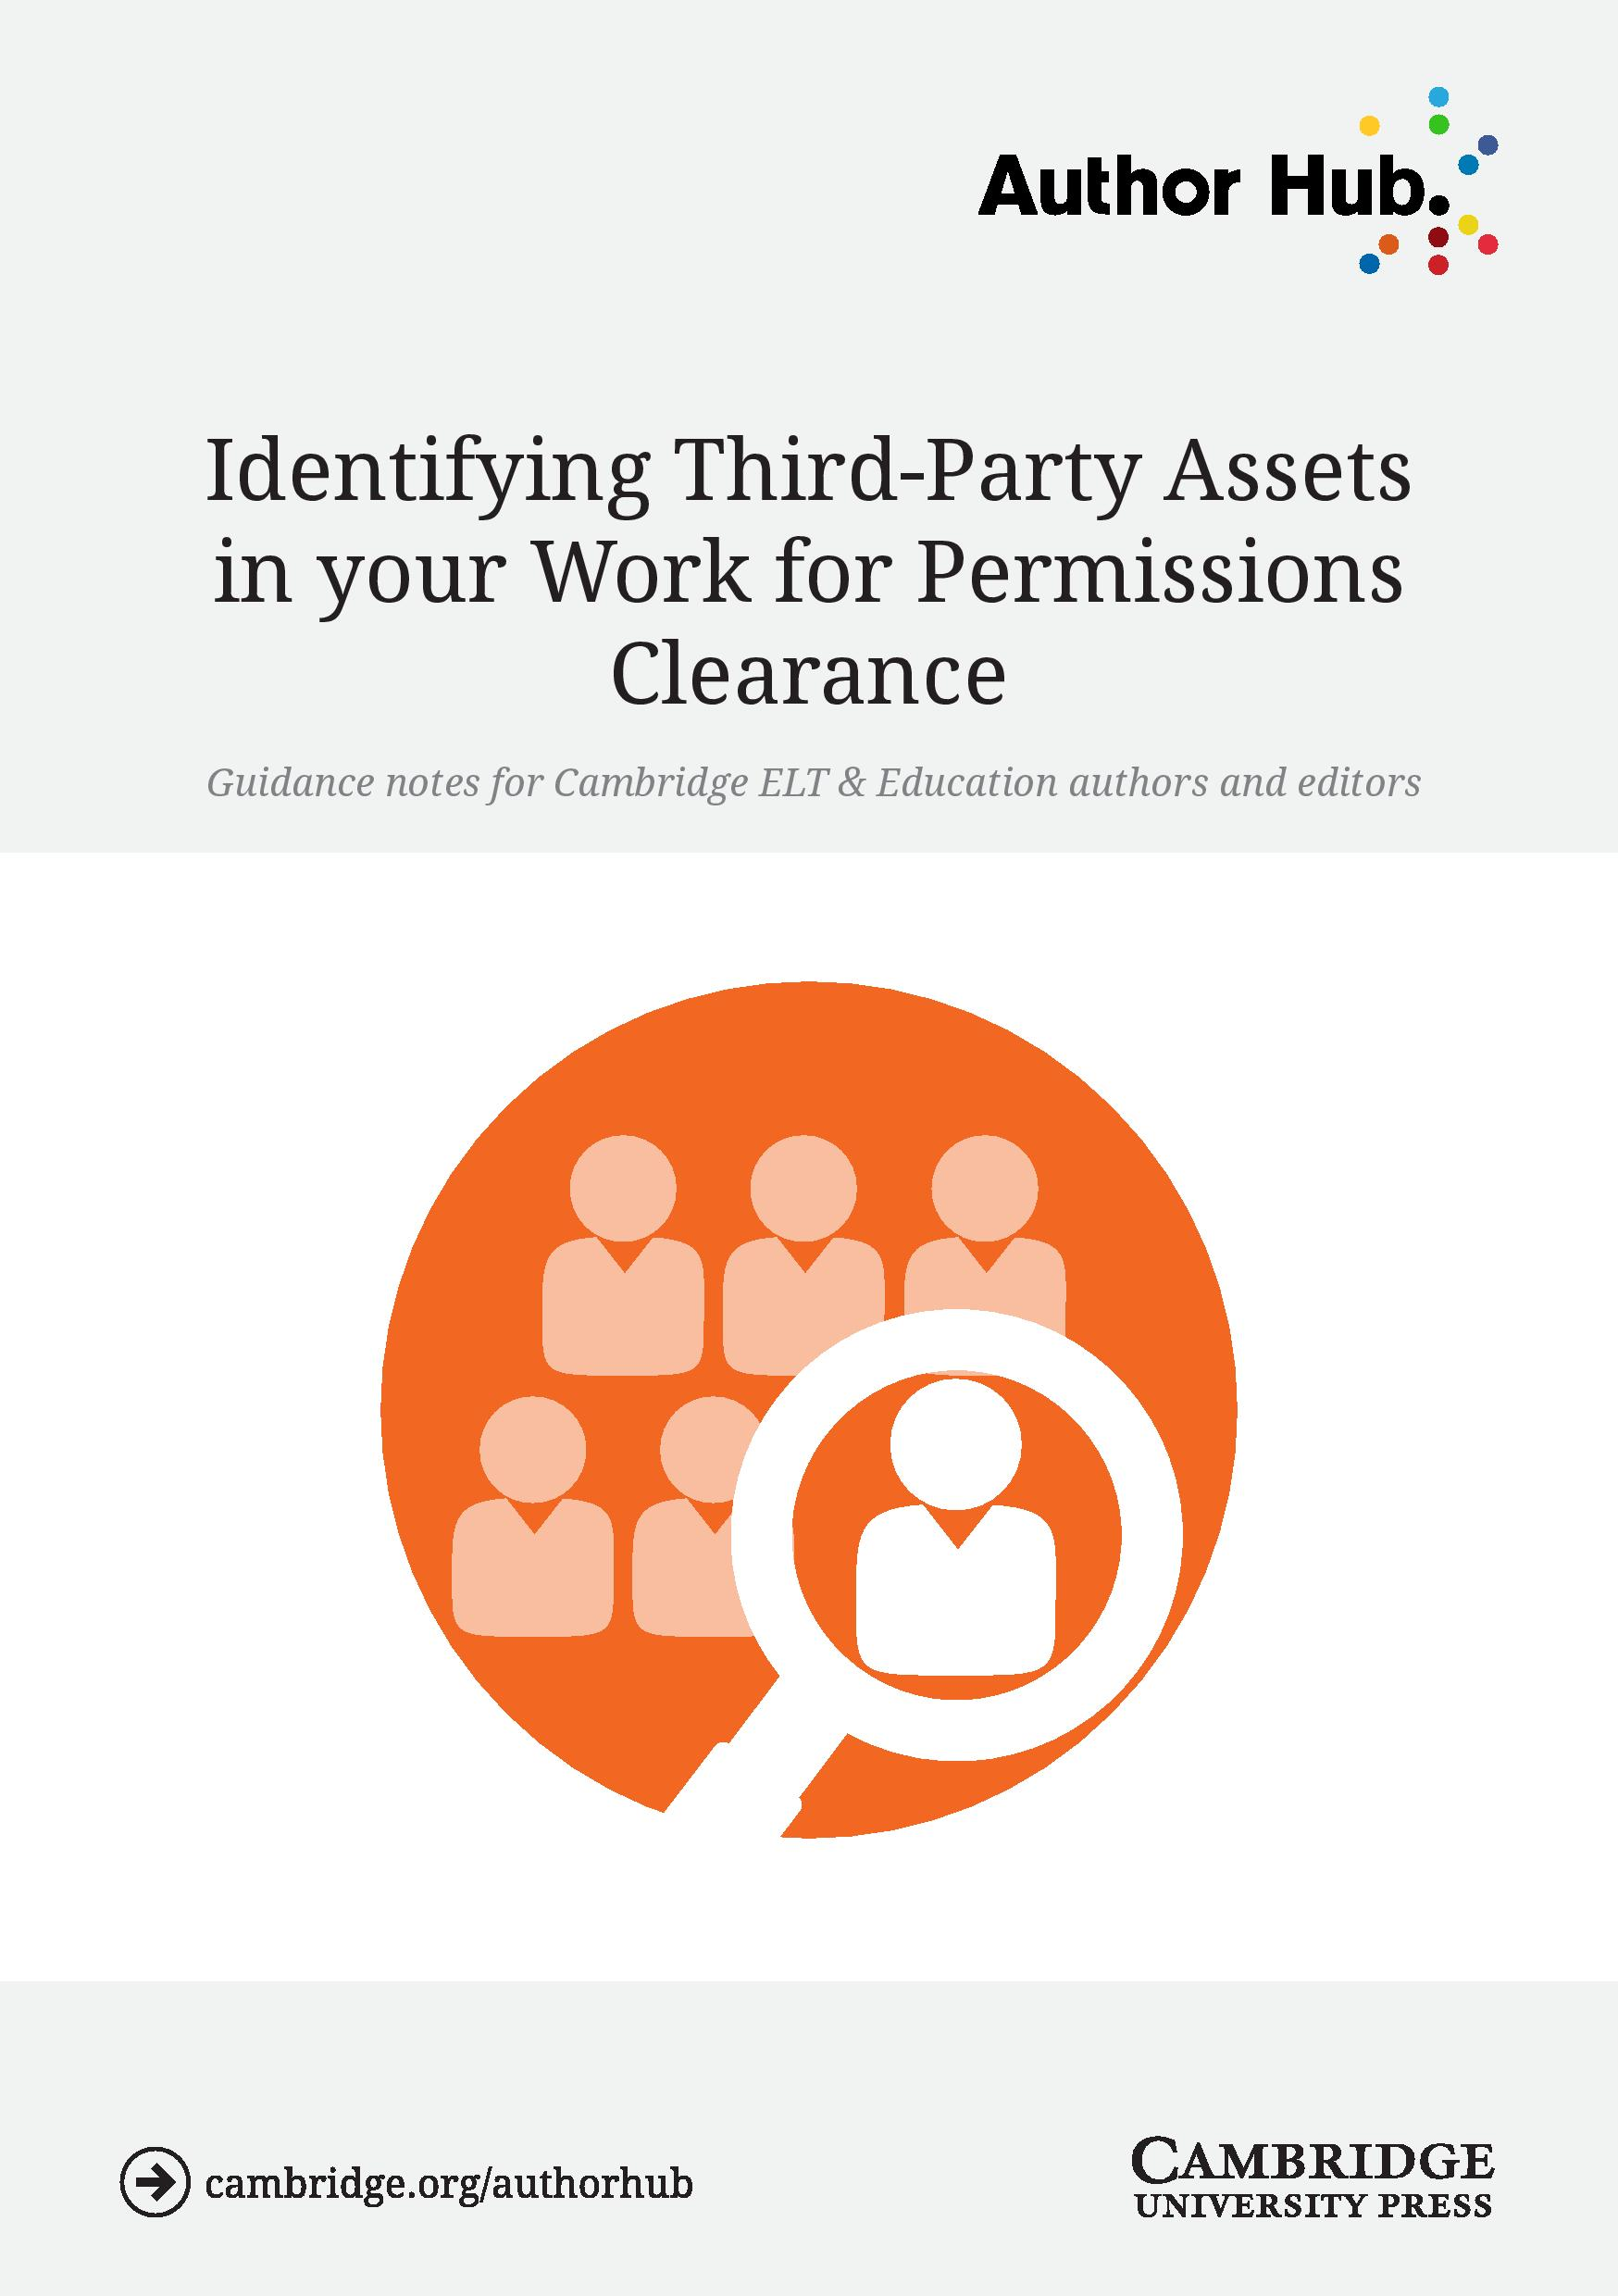 ELT and Education - Identifying Third-Party Assets in your work for permissions clearance